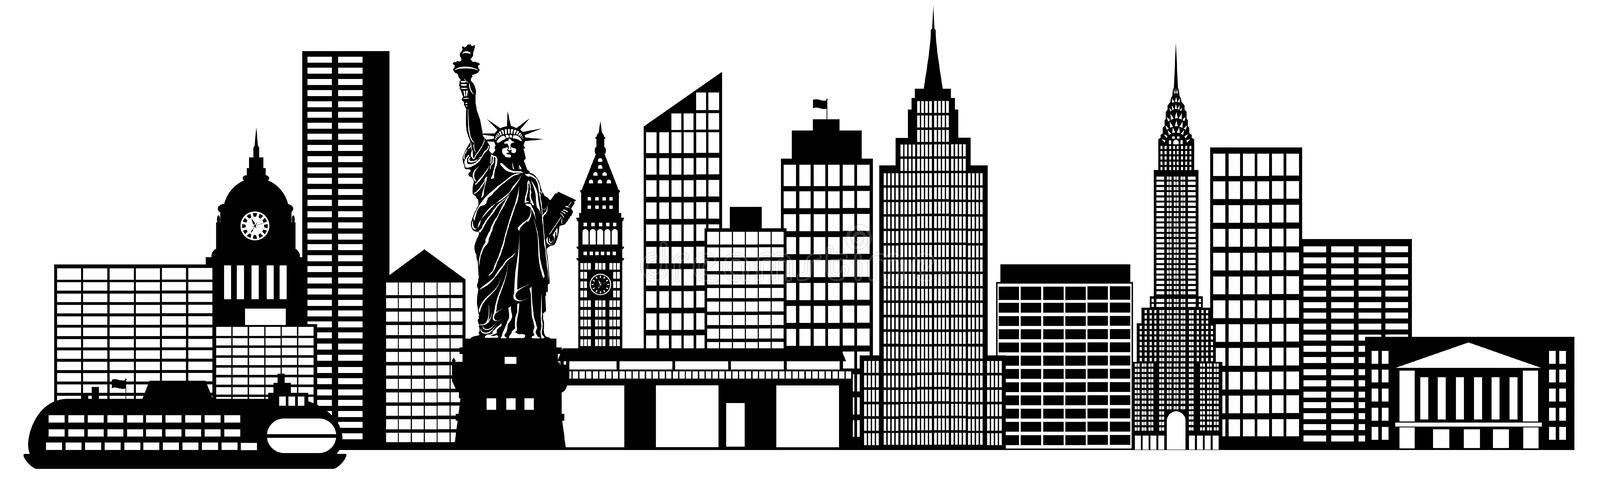 new york city skyline panorama clip art stock illustration rh dreamstime com new york clipart black and white new york clipart skyline